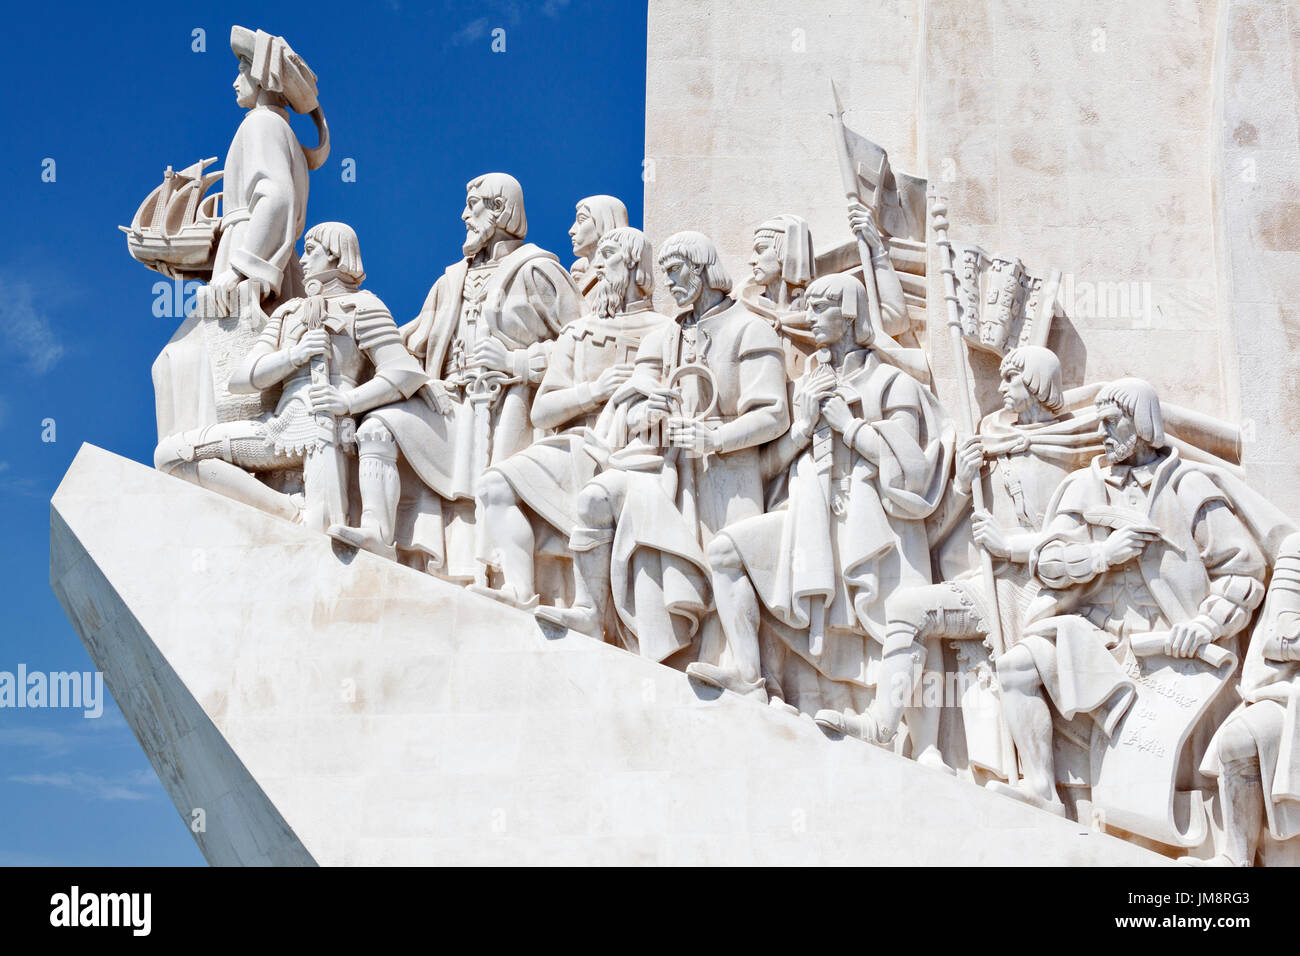 The Monument to the Discoveries in Belem, Lisbon. - Stock Image